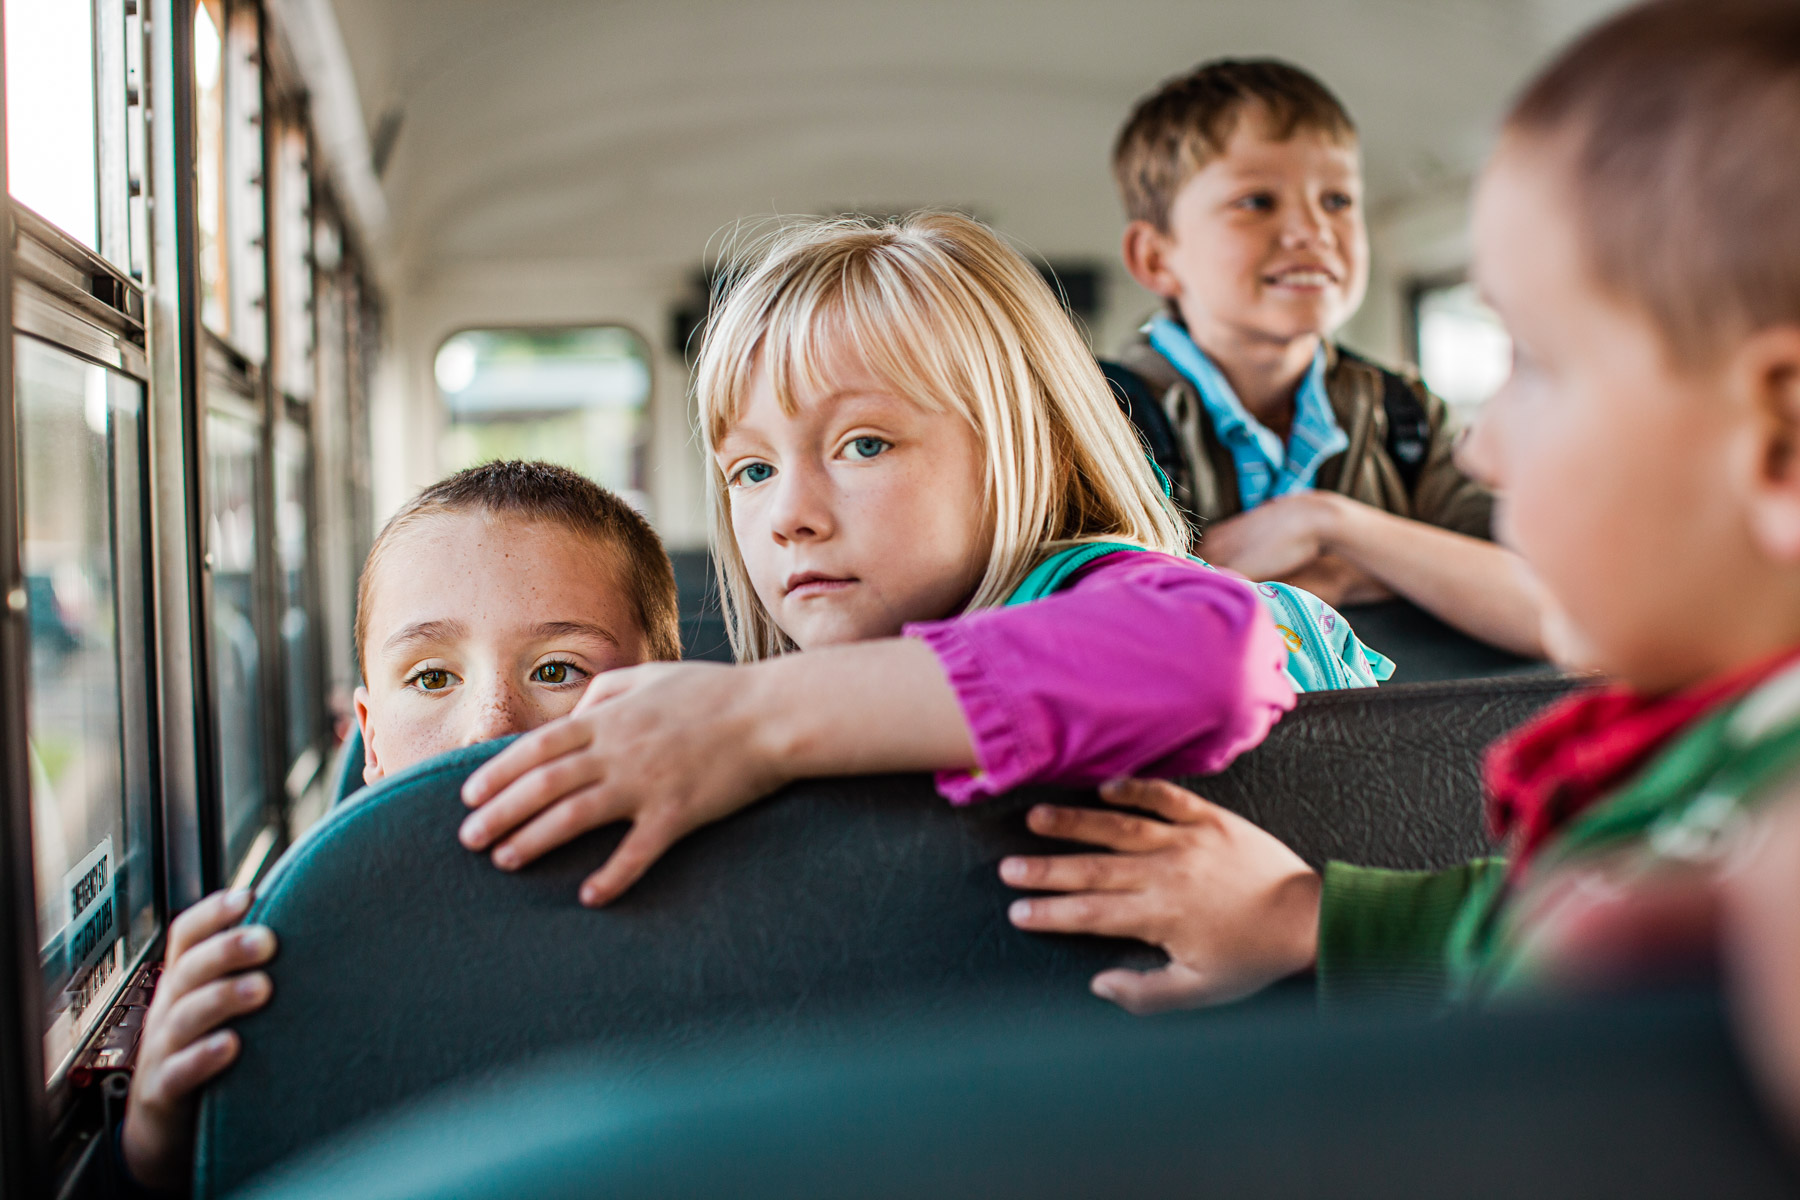 HP_School_Bus_0404_MG_8813_v2